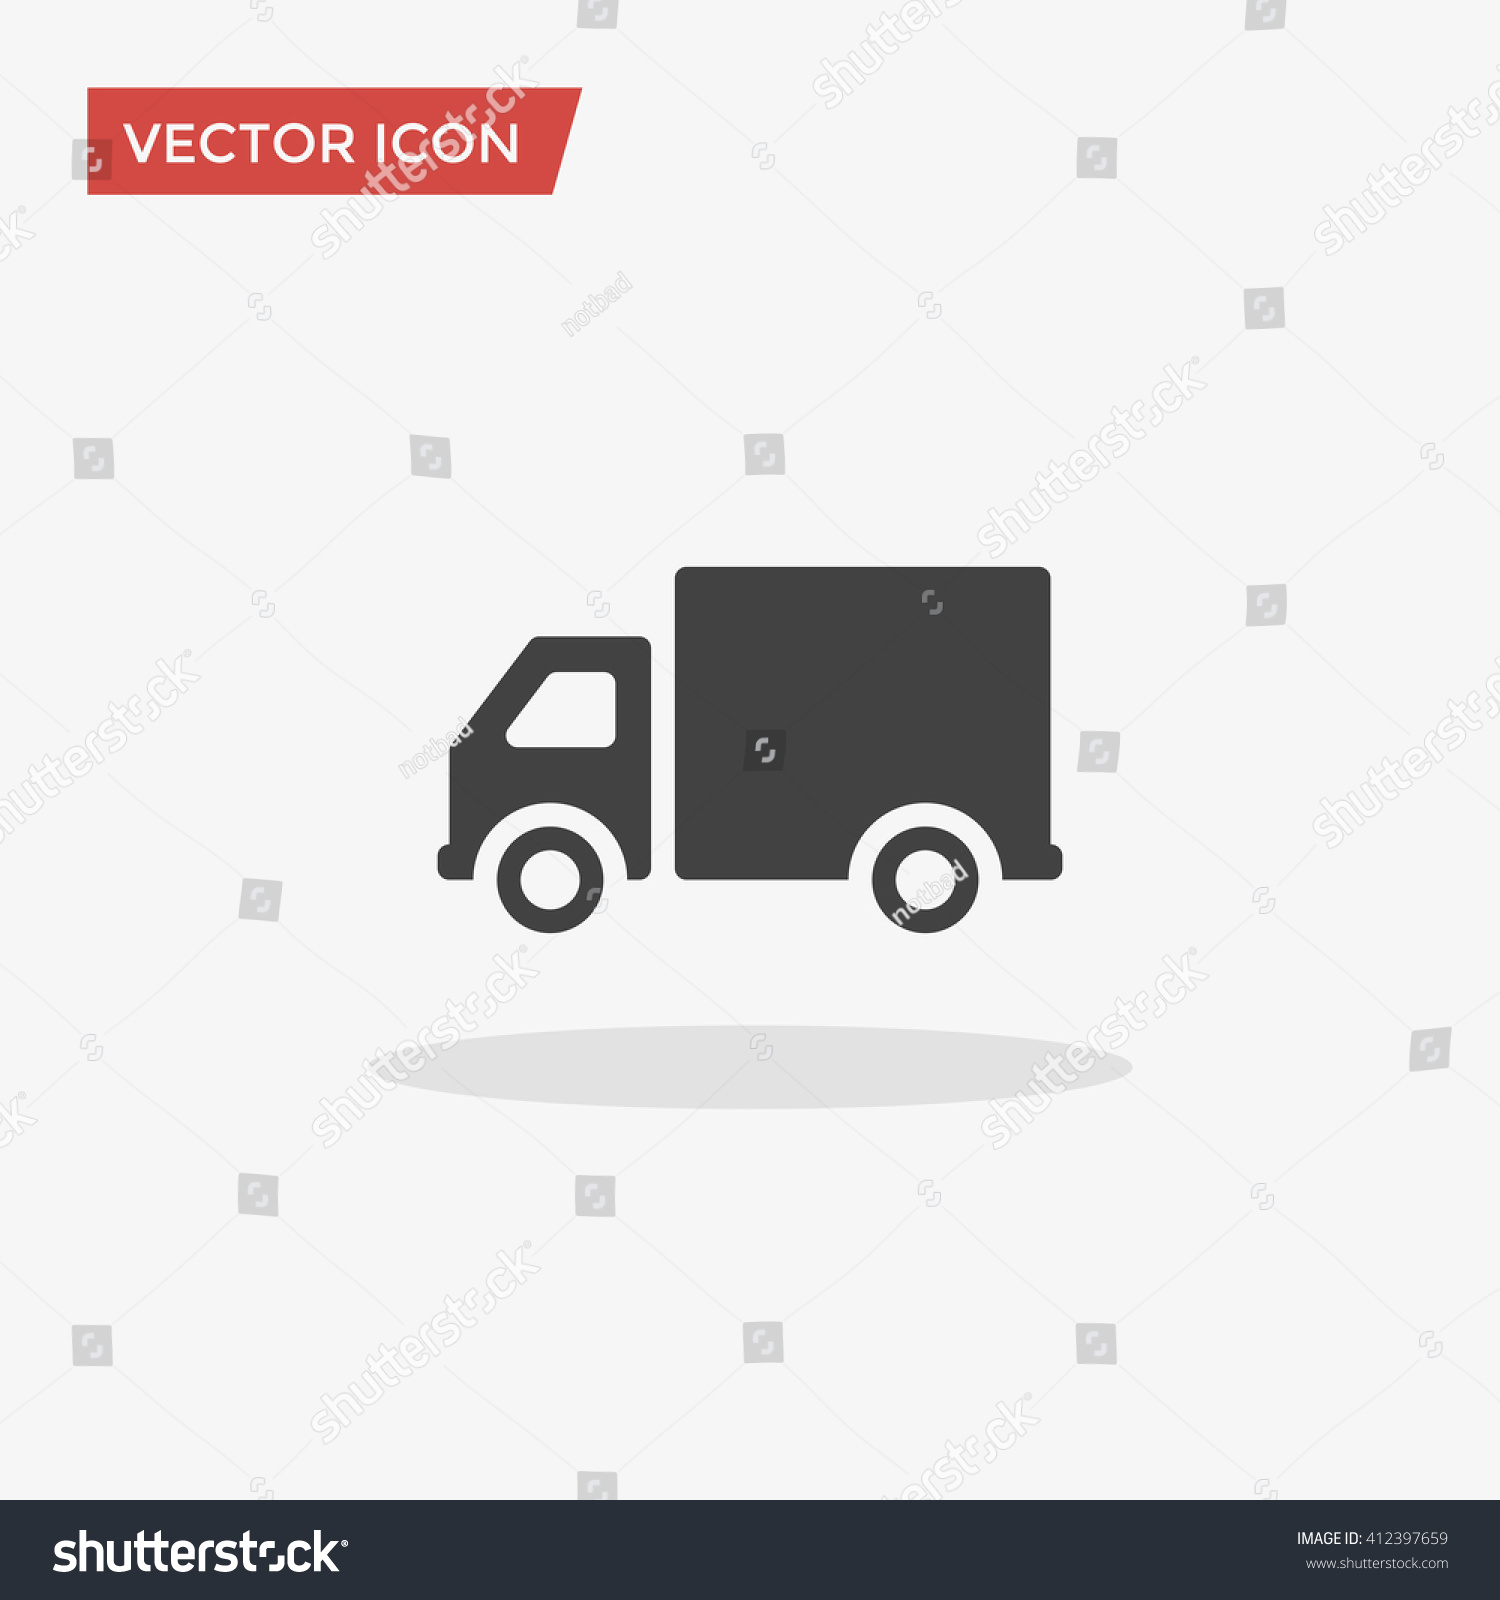 Truck icon trendy flat style isolated stock vector for Truck design app